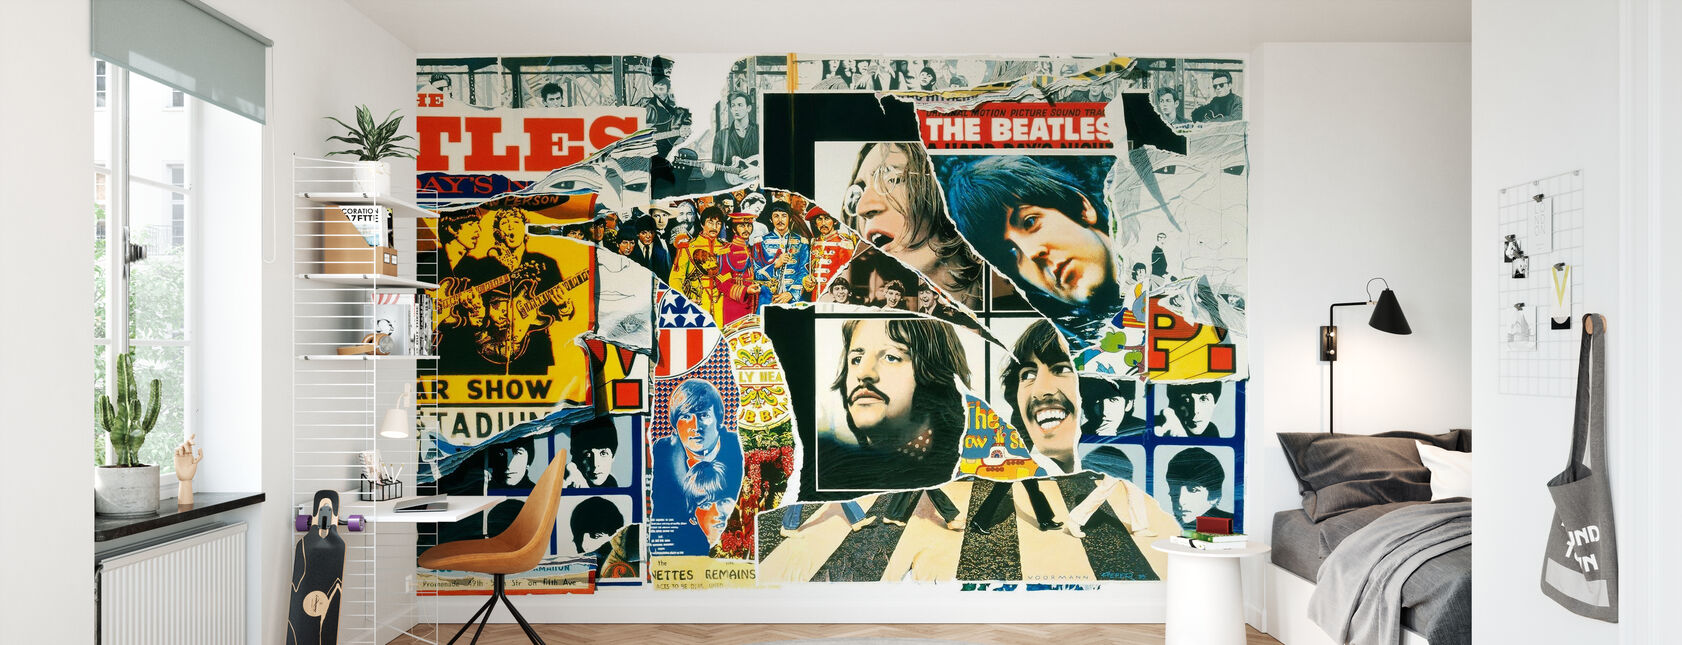 Beatles - Vintage Juliste Wall - Tapetti - Lastenhuone